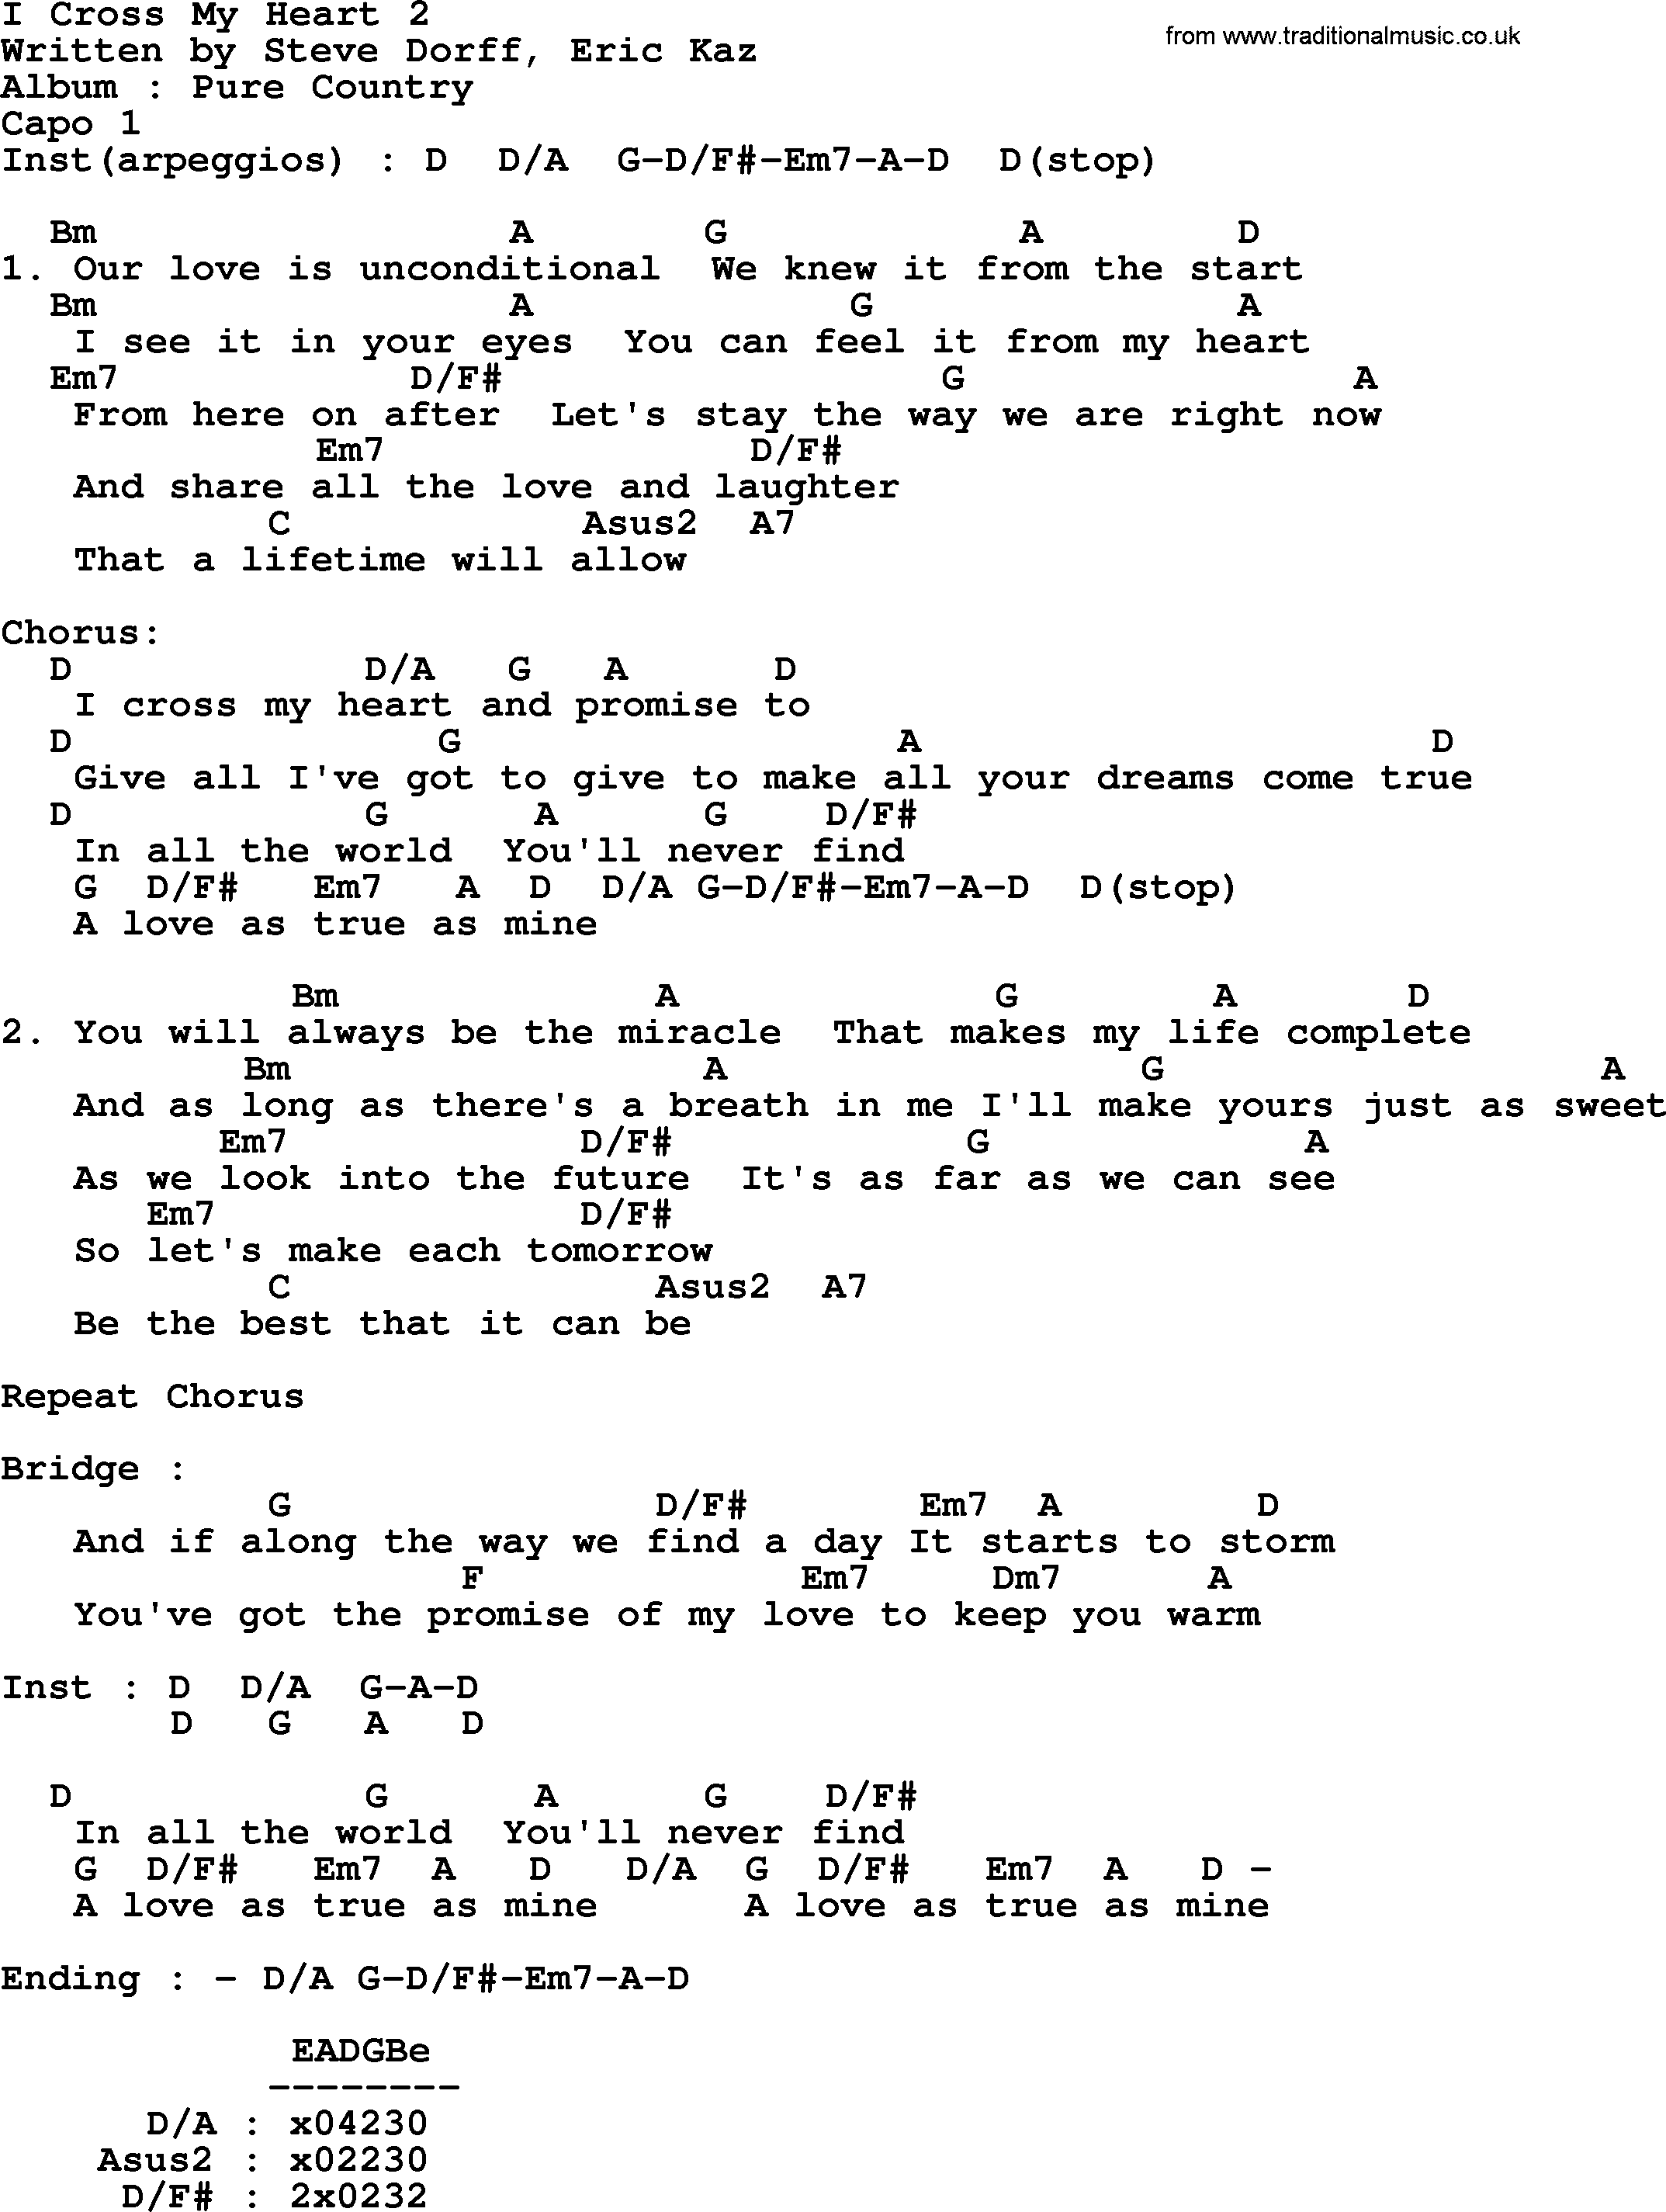 I cross my heart 2 by george strait lyrics and chords george strait song i cross my heart 2 lyrics and chords hexwebz Image collections